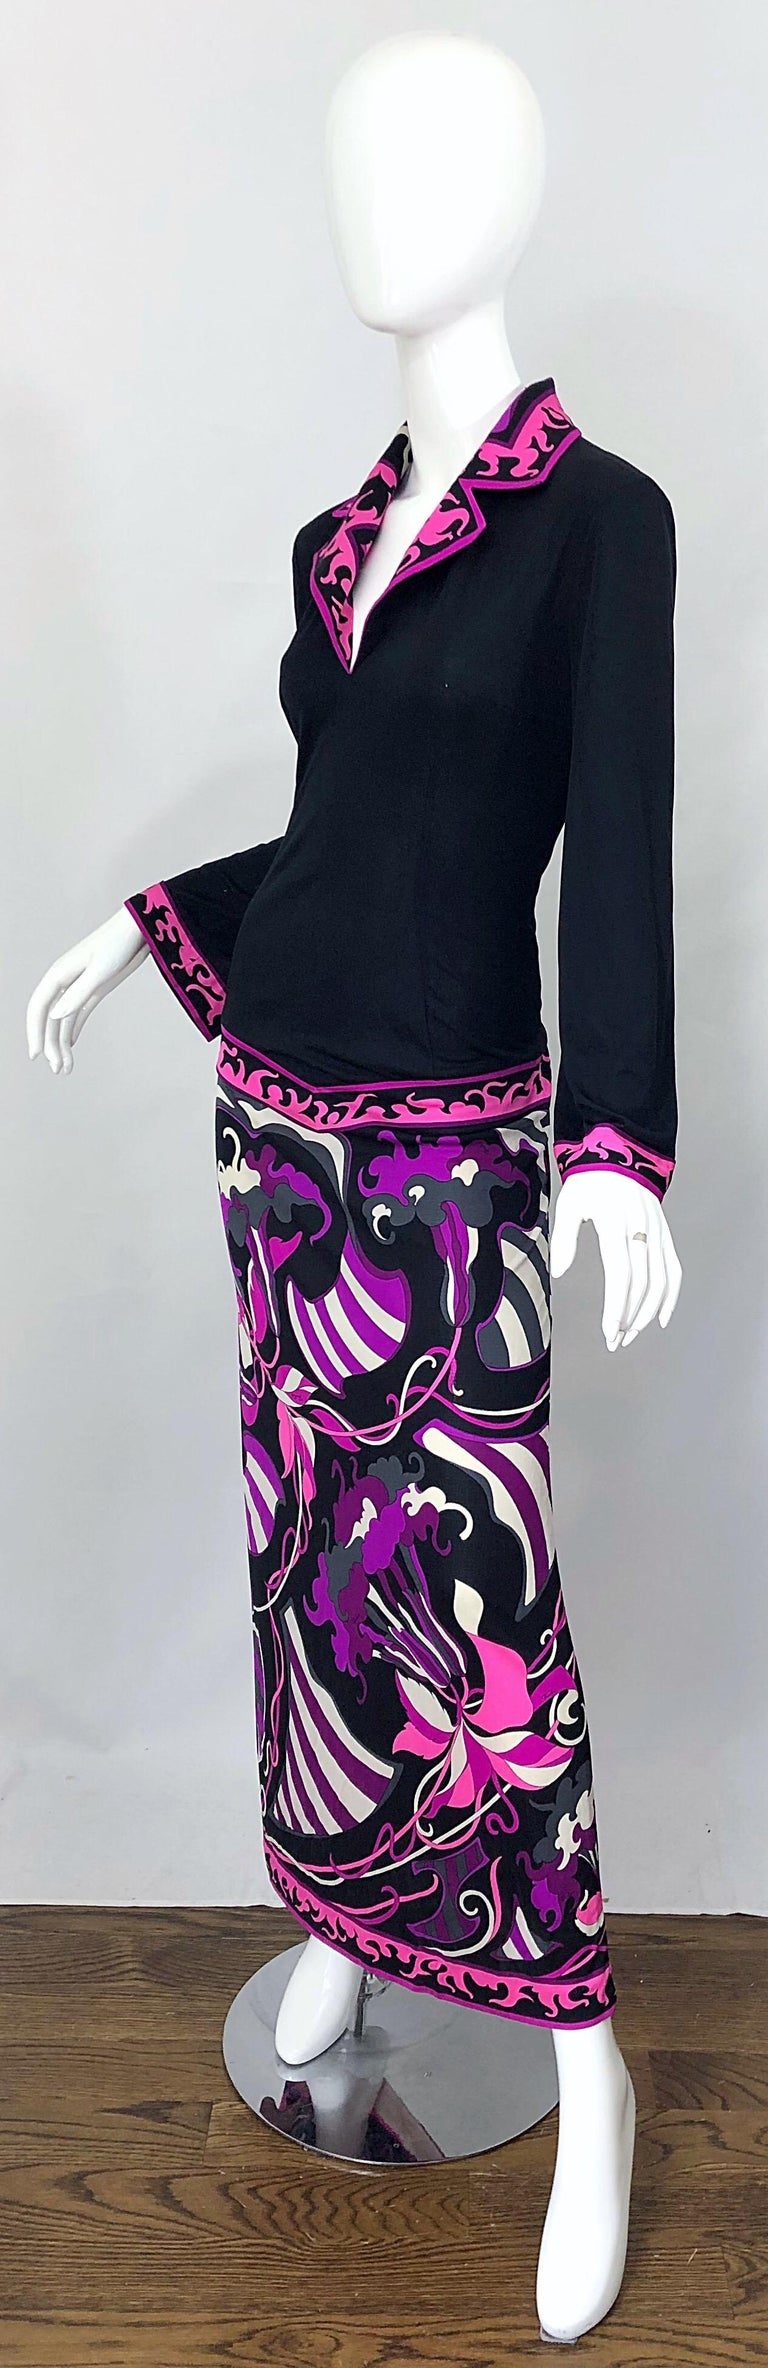 Emilio Pucci 1970s Silk Jersey Pink Purple Black Vintage 70s Maxi Dress For Sale 3